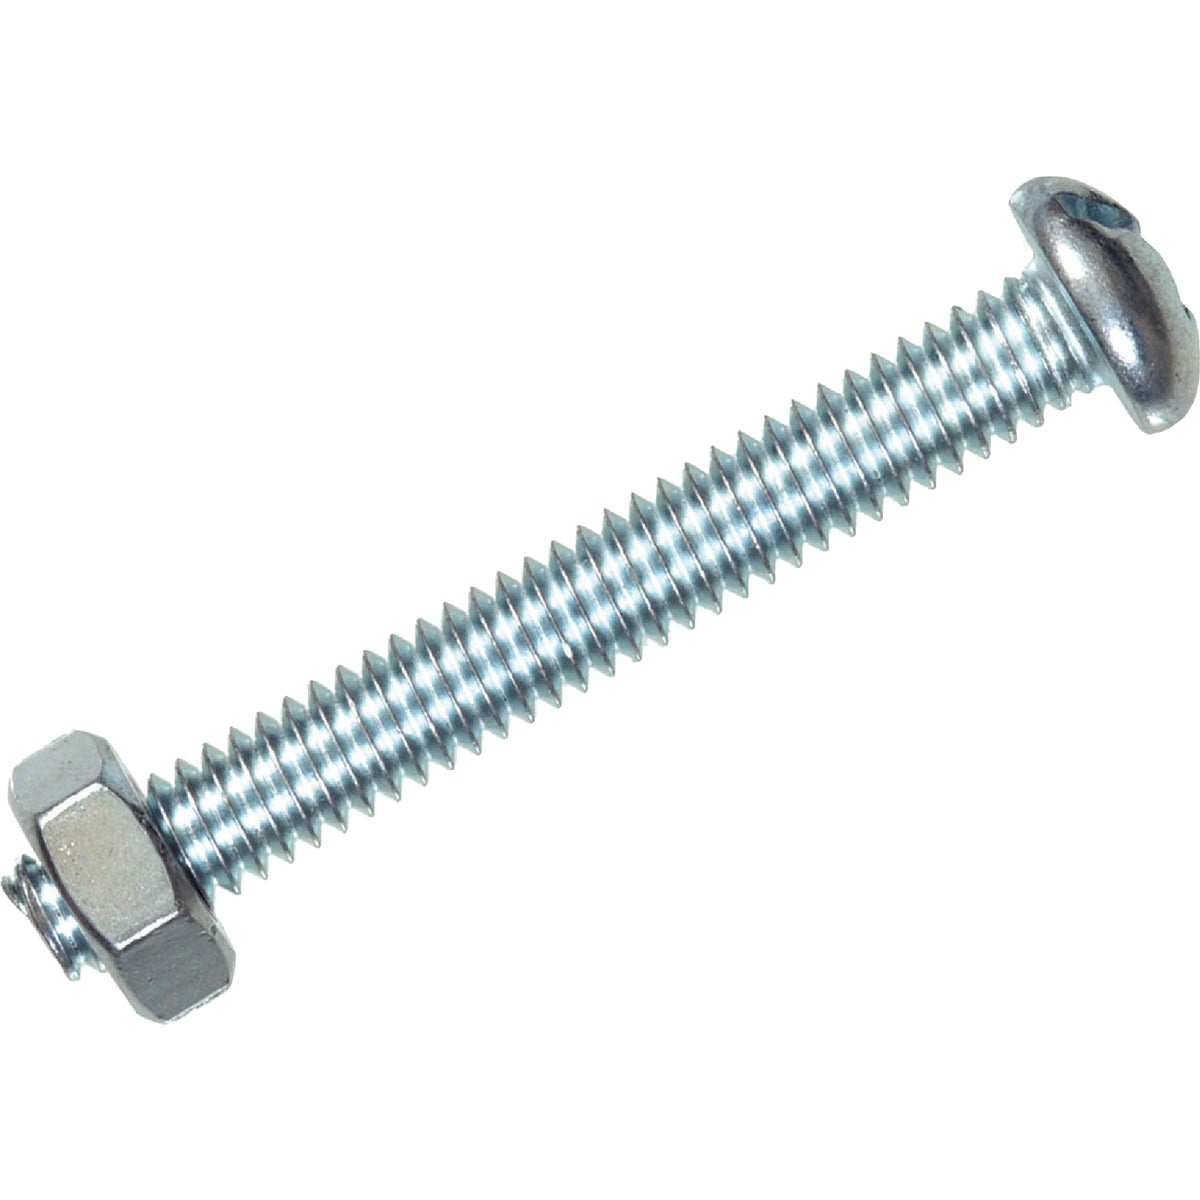 6-32X1-1/2 MACHINE SCREW - 7659 by Hillman Fastener